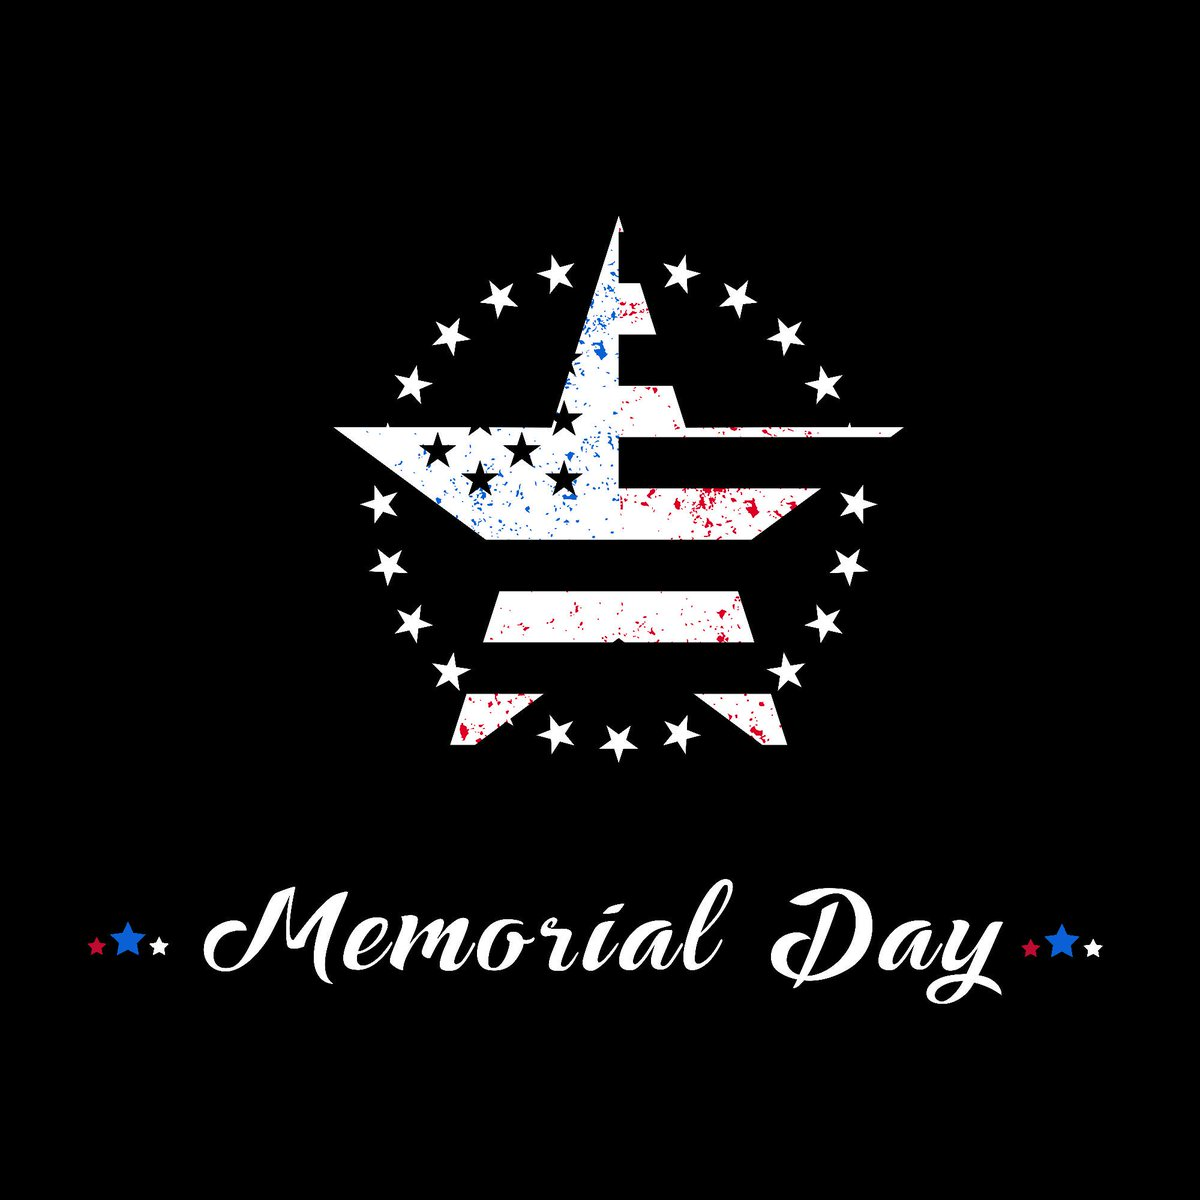 It&#39;s Memorial Day! Remember those who gave their all!  #memorialday #remember #uptowngroup #realestate #monday #may<br>http://pic.twitter.com/2JWcUCZVn6